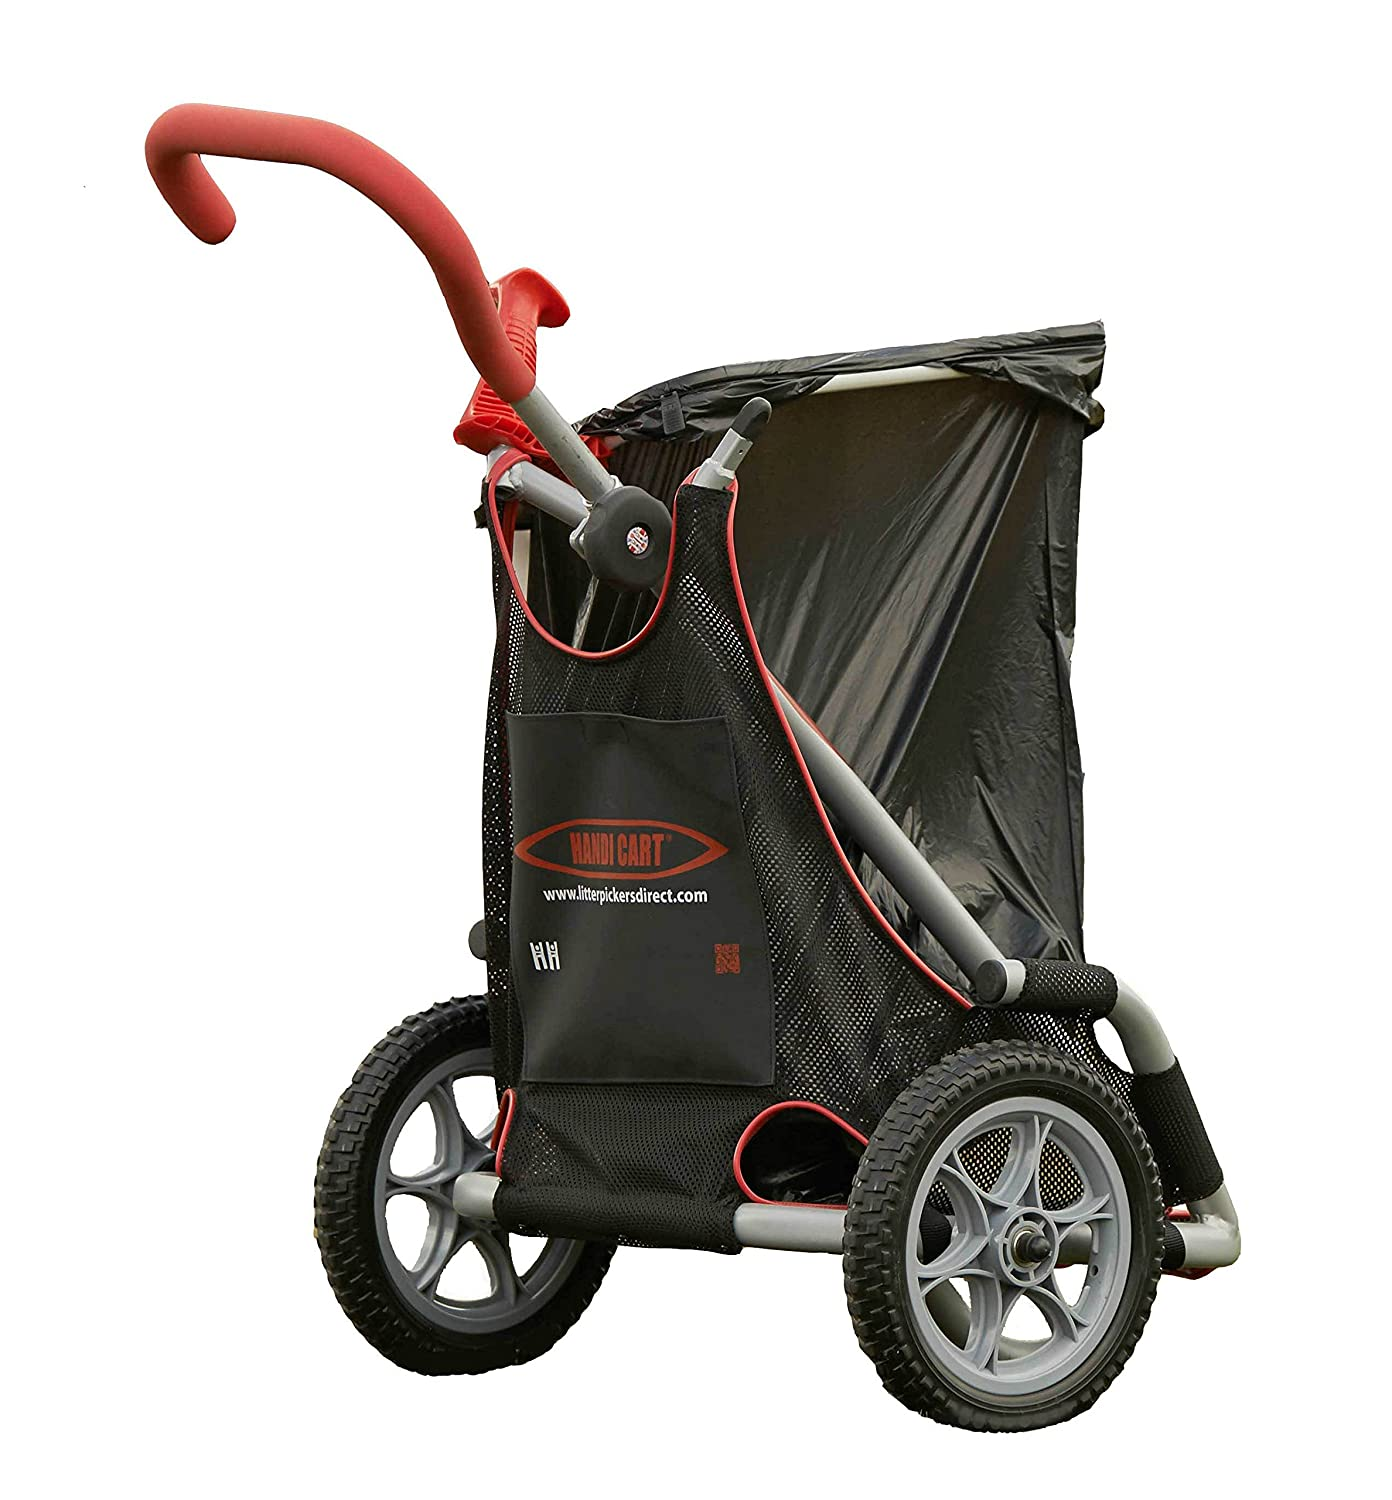 Red//Silver The Helping Hand Company Graptor Kids Litter Picker 27-Inch